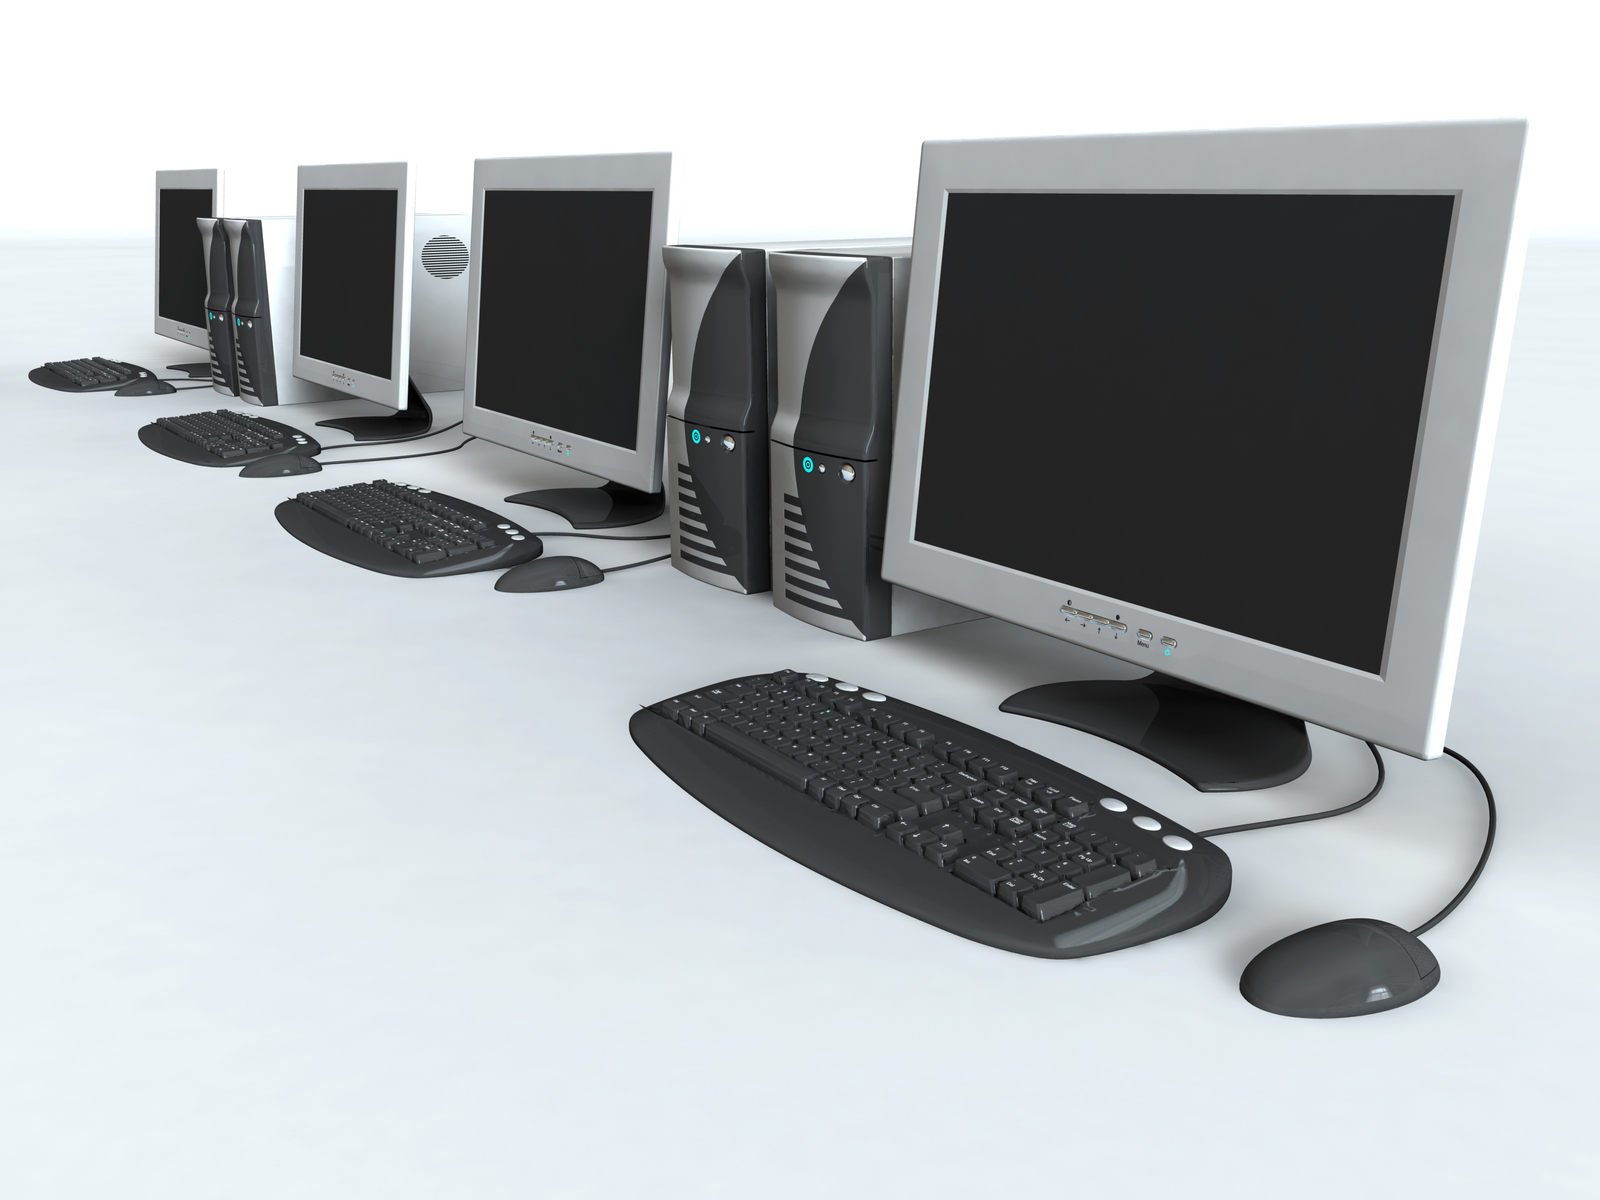 A series of computers in a lab. 3D rendering with raytraced textures and HDRI lighting.